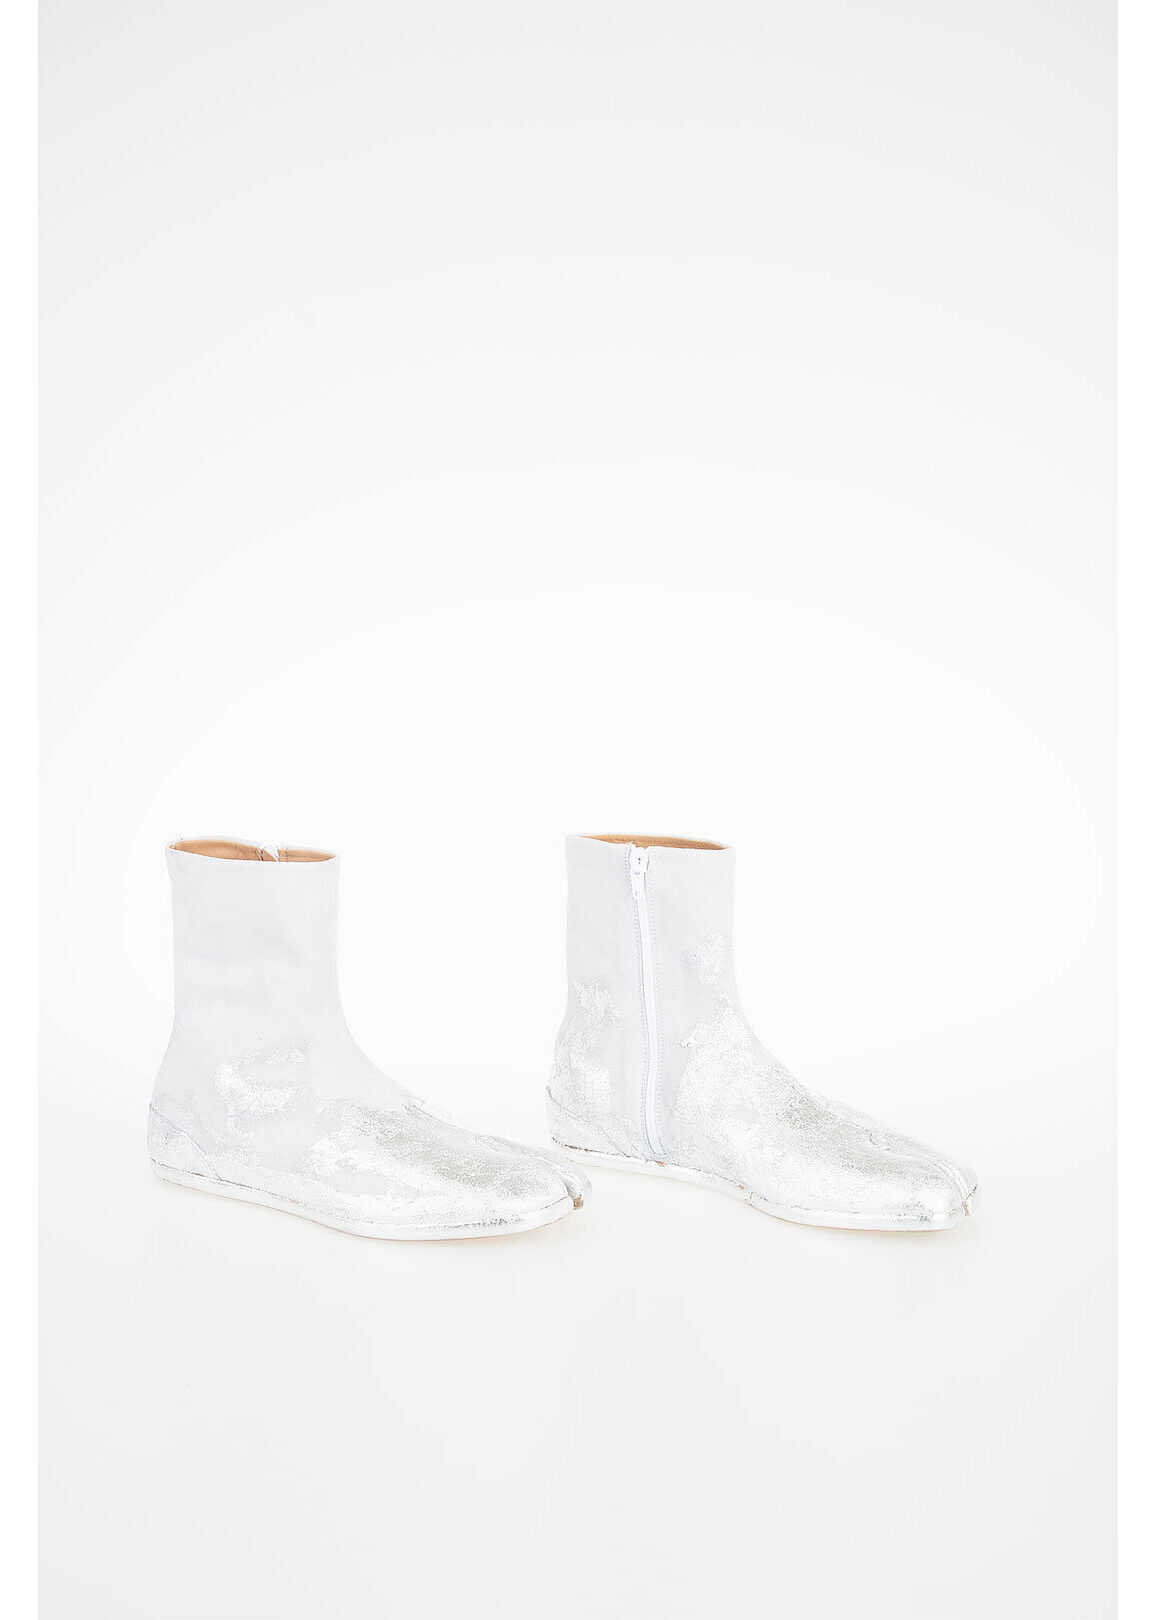 Maison Margiela MM22 Leather Vintage Effect Ankle Boot SILVER